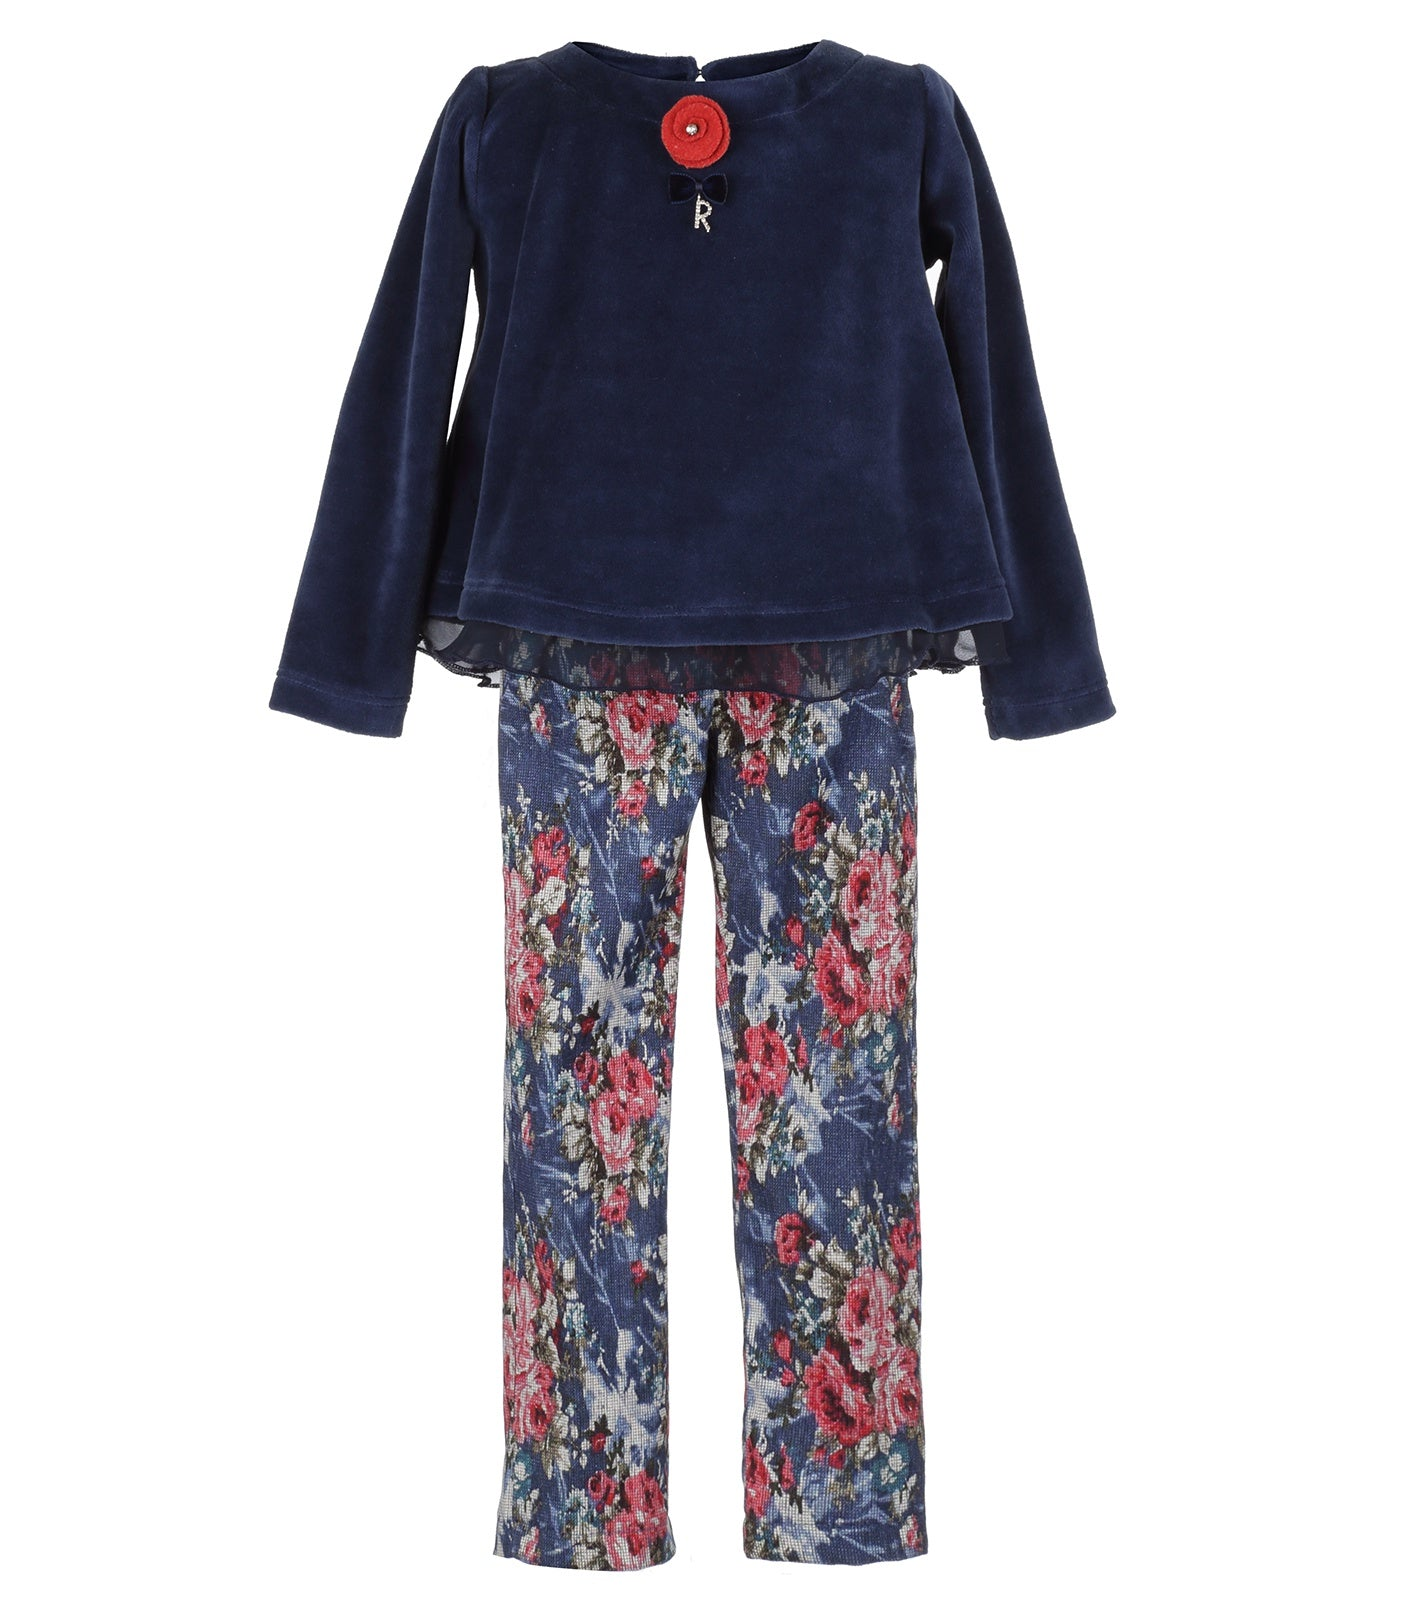 Girl Floral Pants in Blue & Red